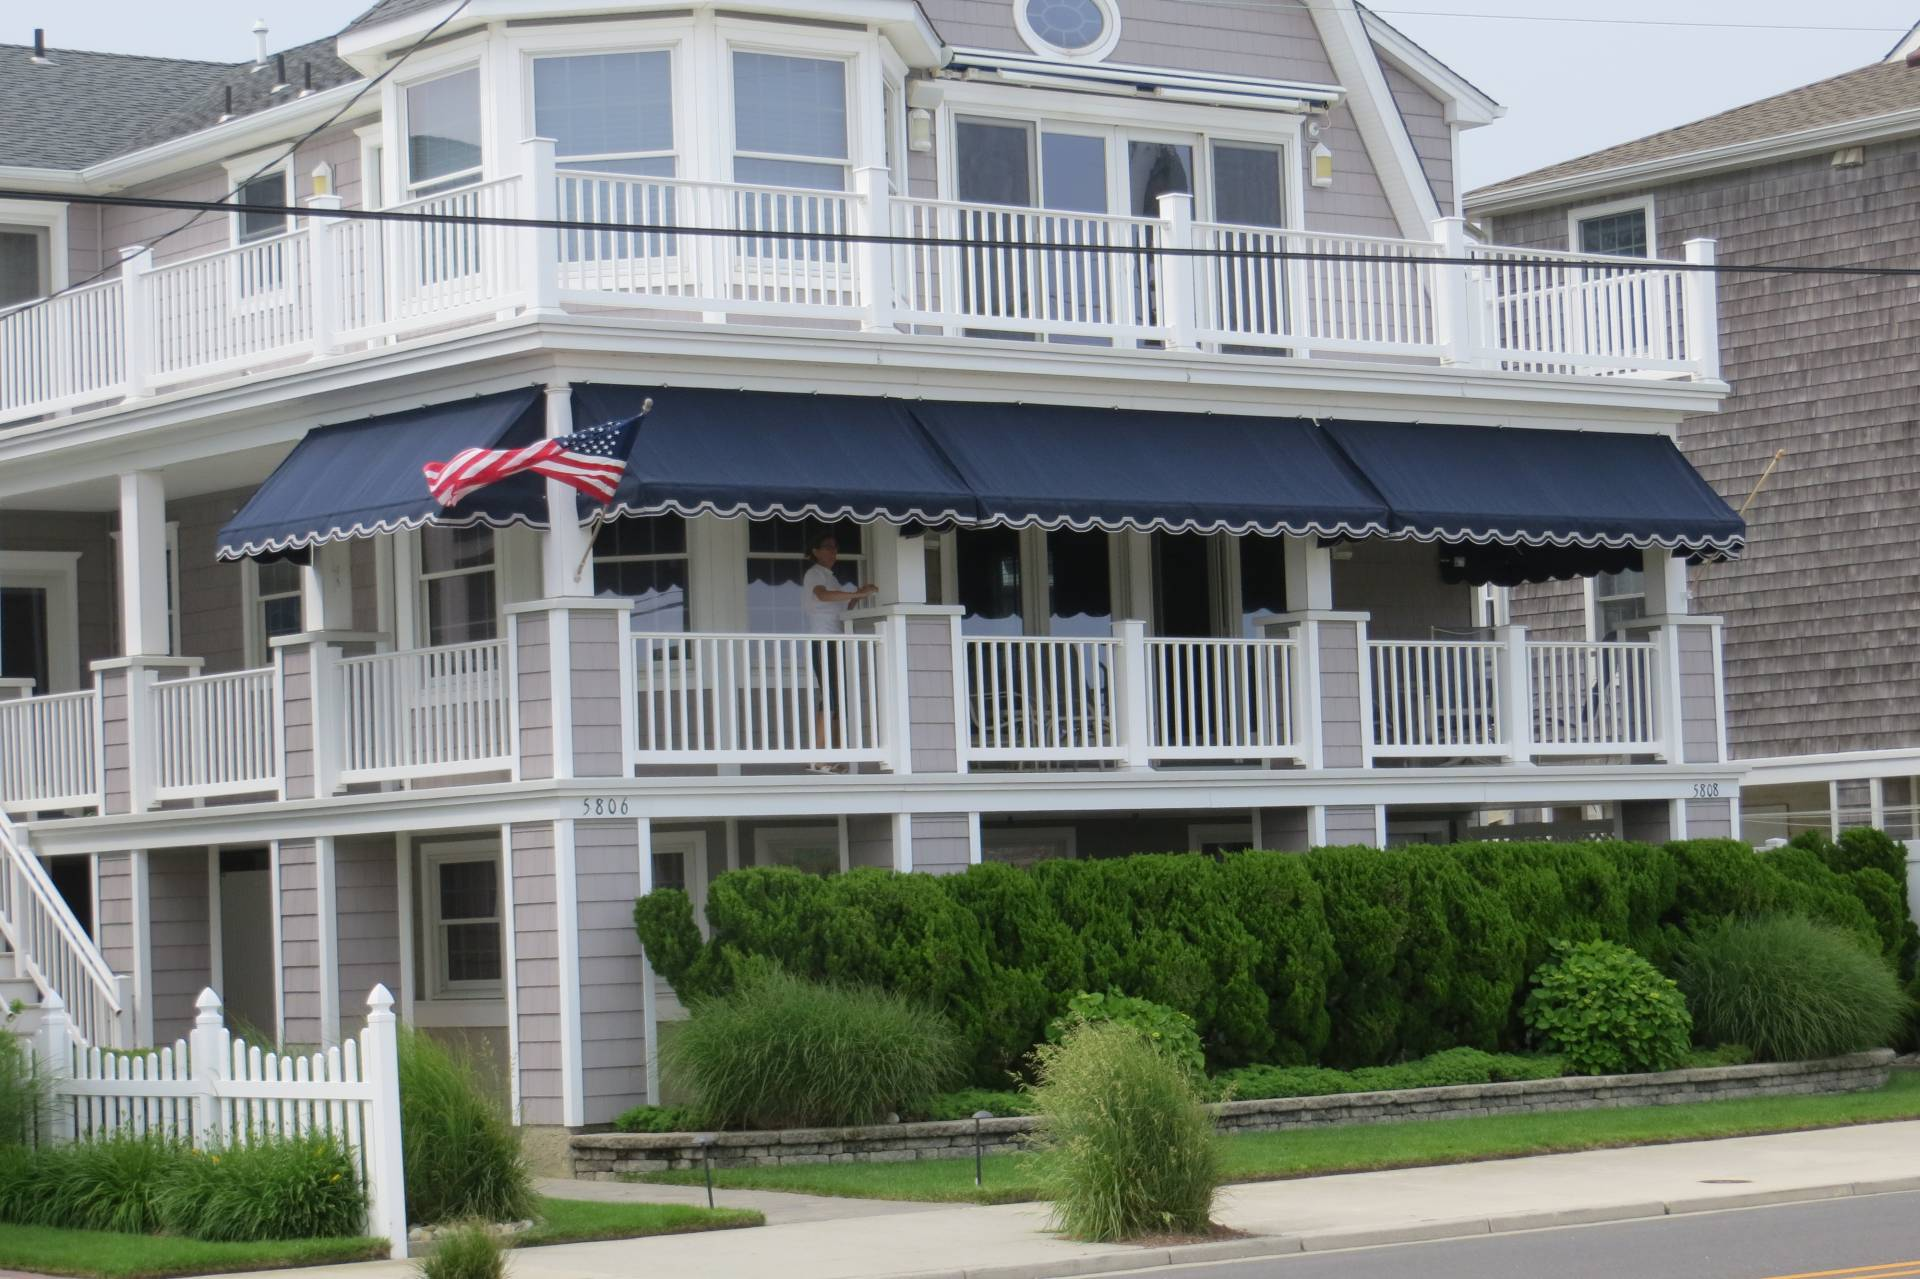 Porch Awnings With An Appliqued Scalloped Edge Kreider S